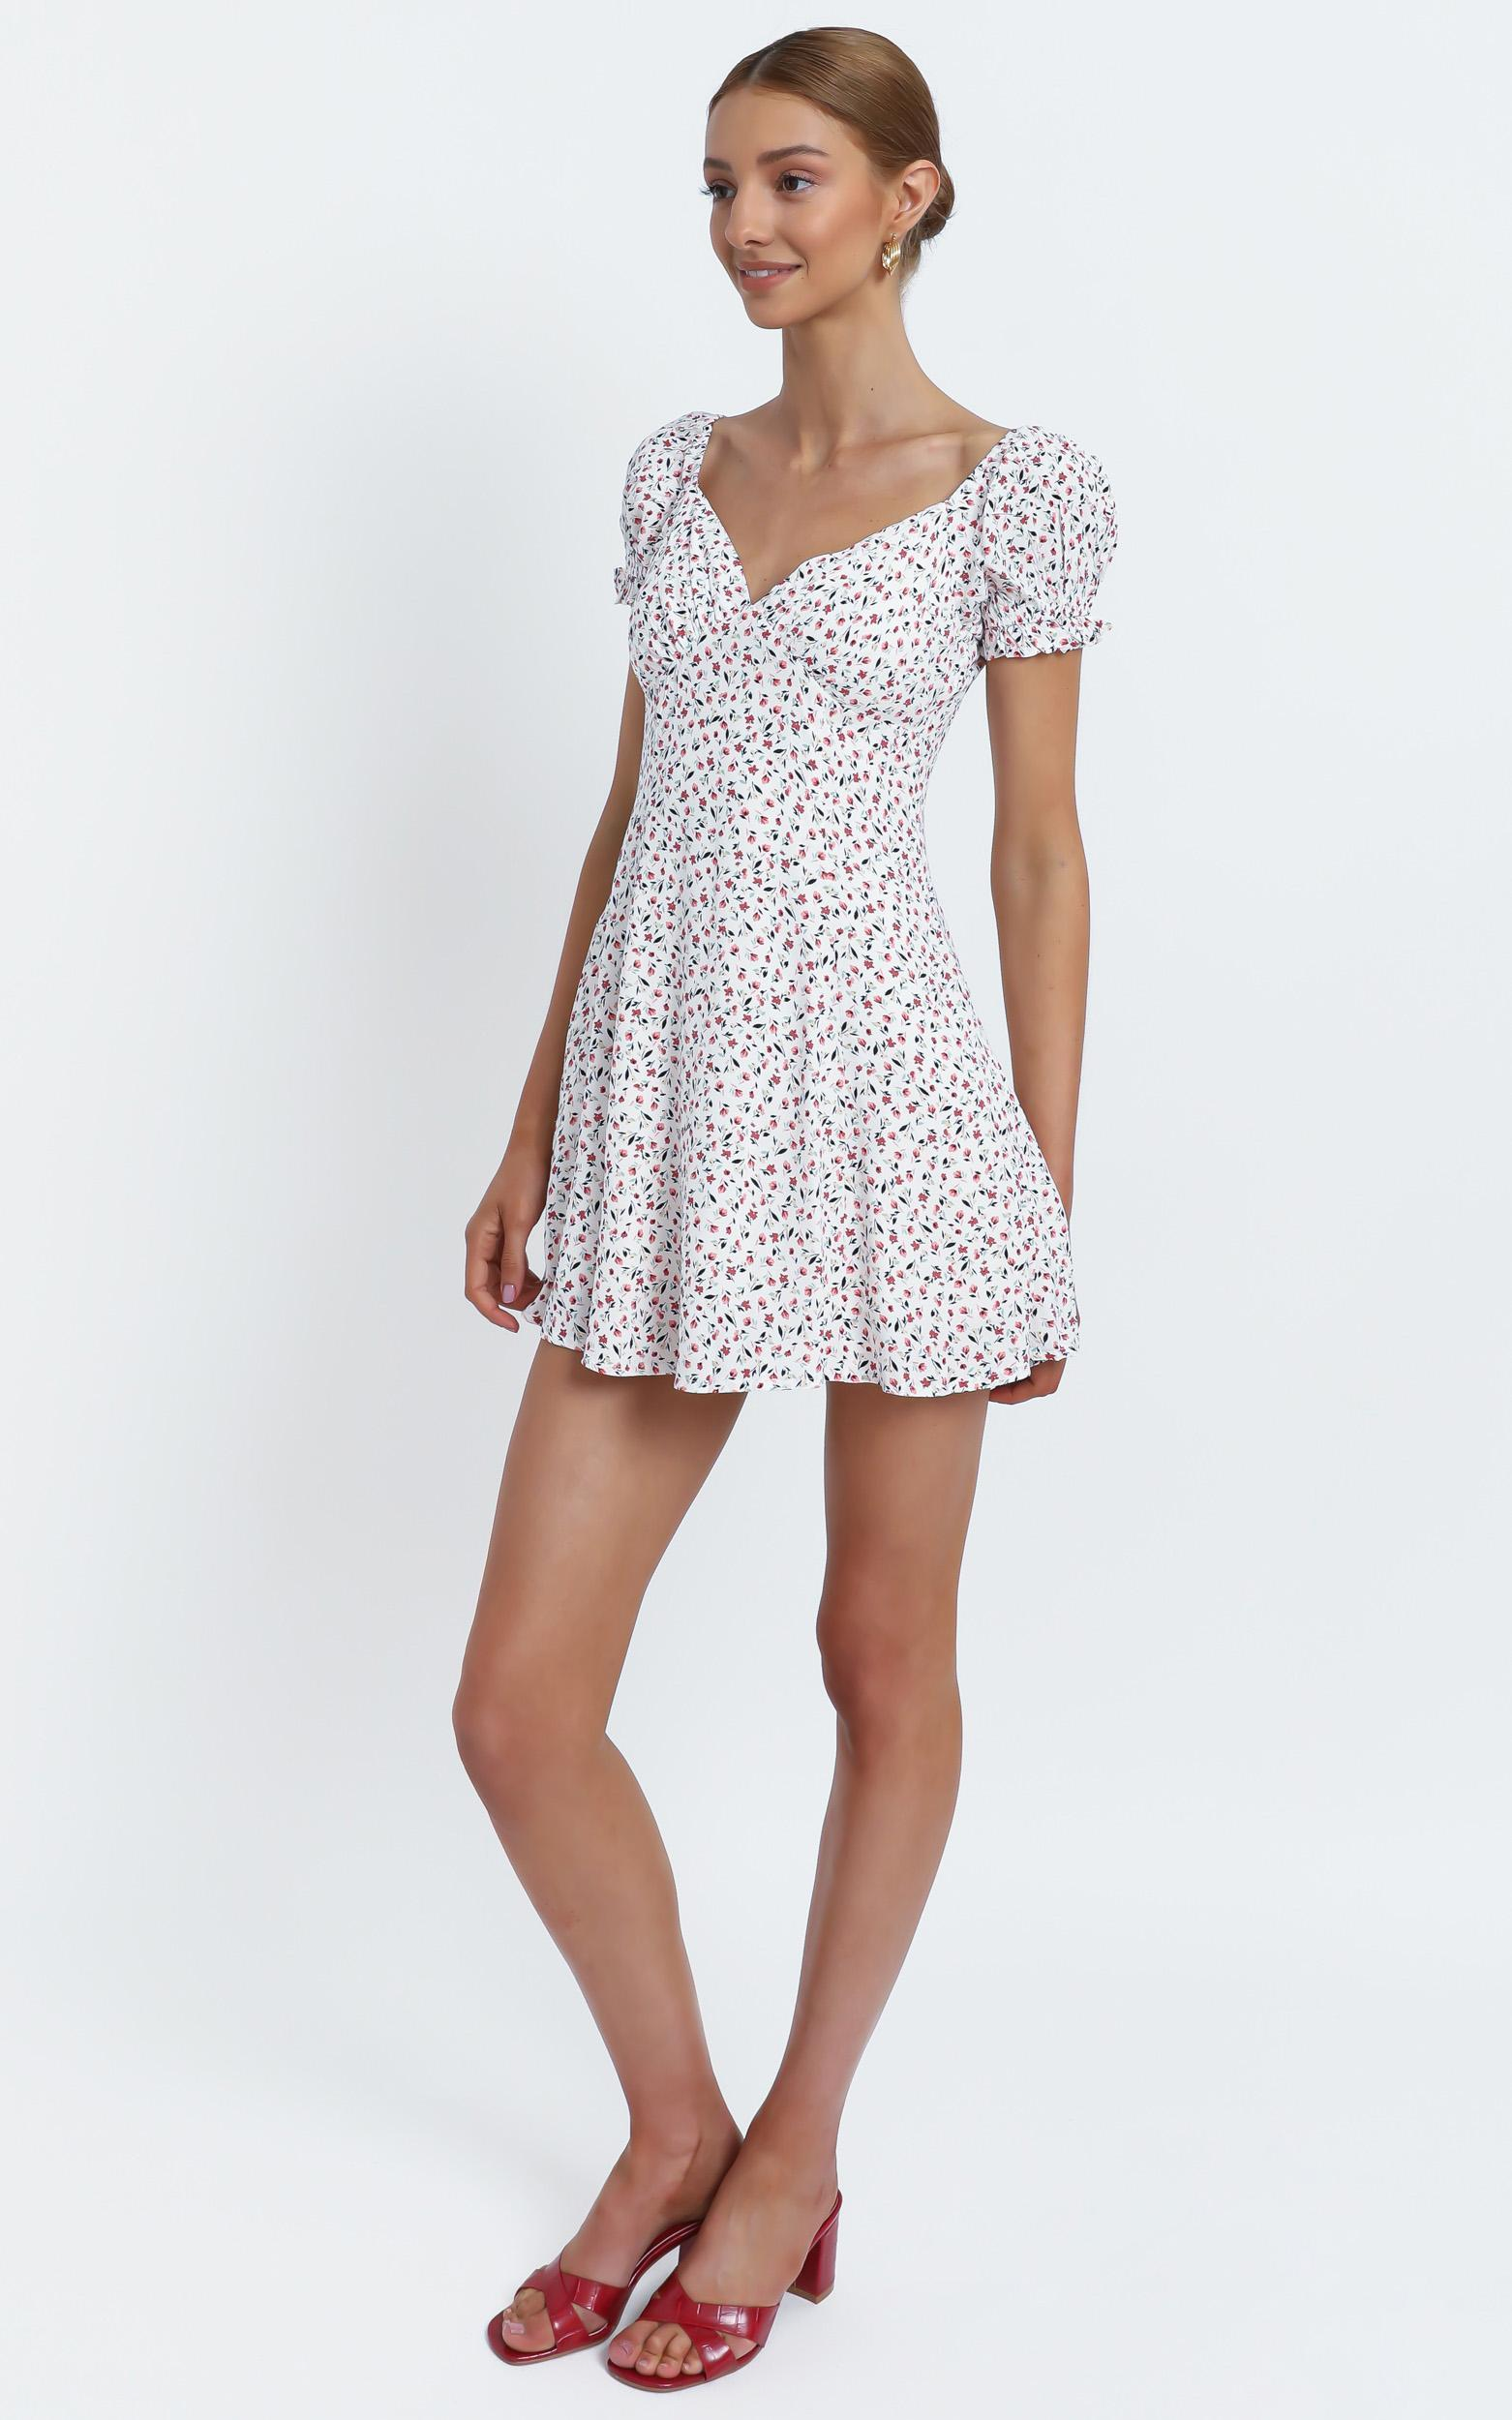 Siena Dress in White Floral - 12 (L), White, hi-res image number null